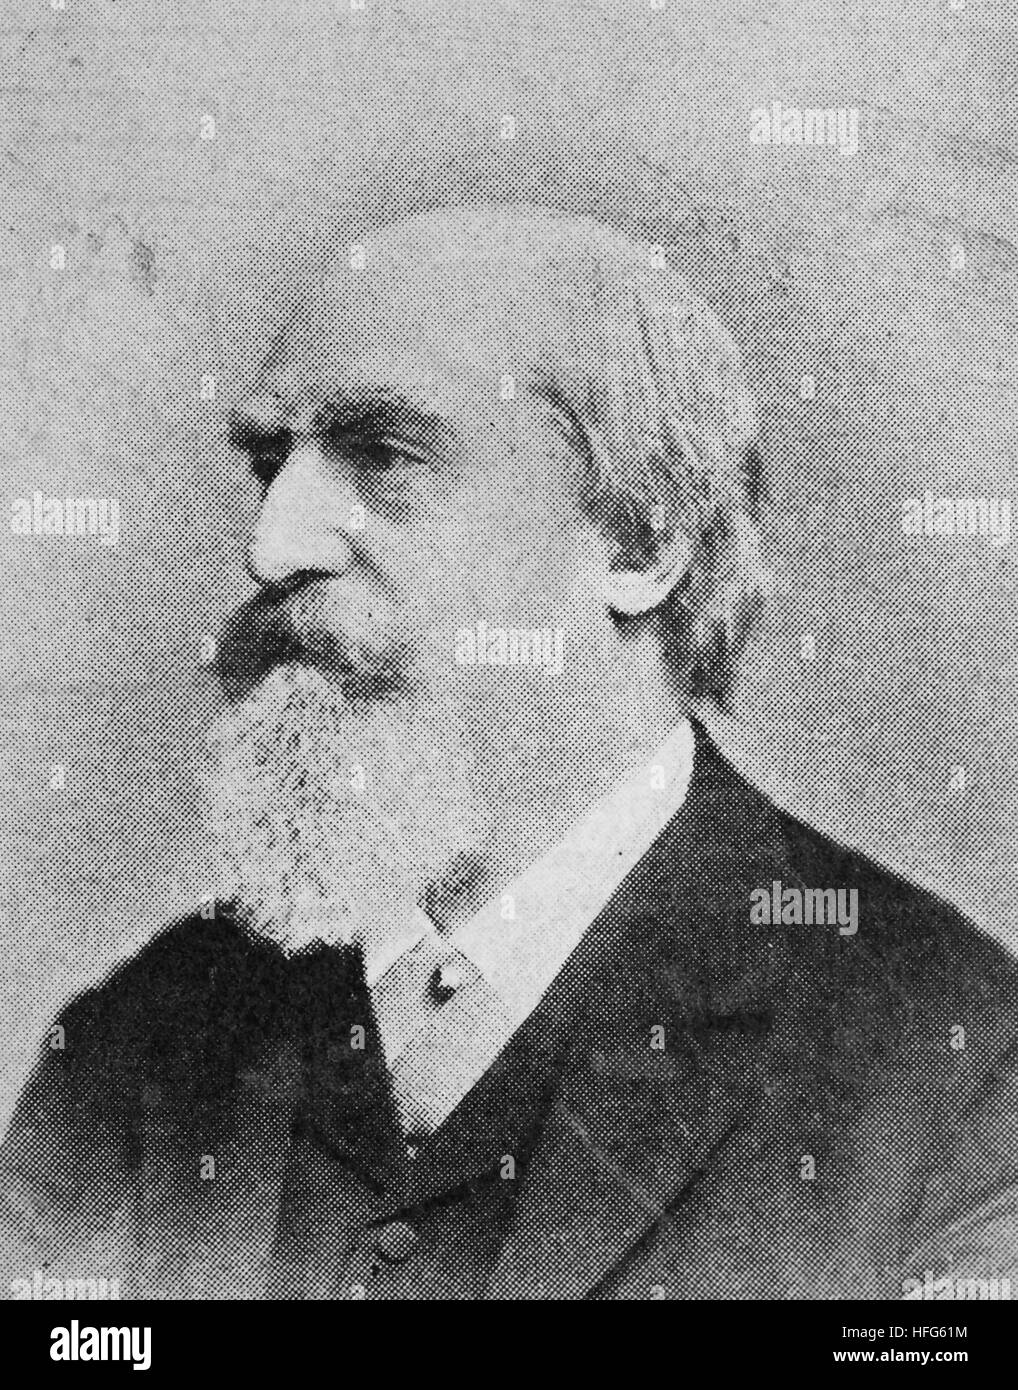 Eduard Hanslick, 1825 - 1904, was a German Bohemian music critic, reproduction photo from the year 1895, digital - Stock Image